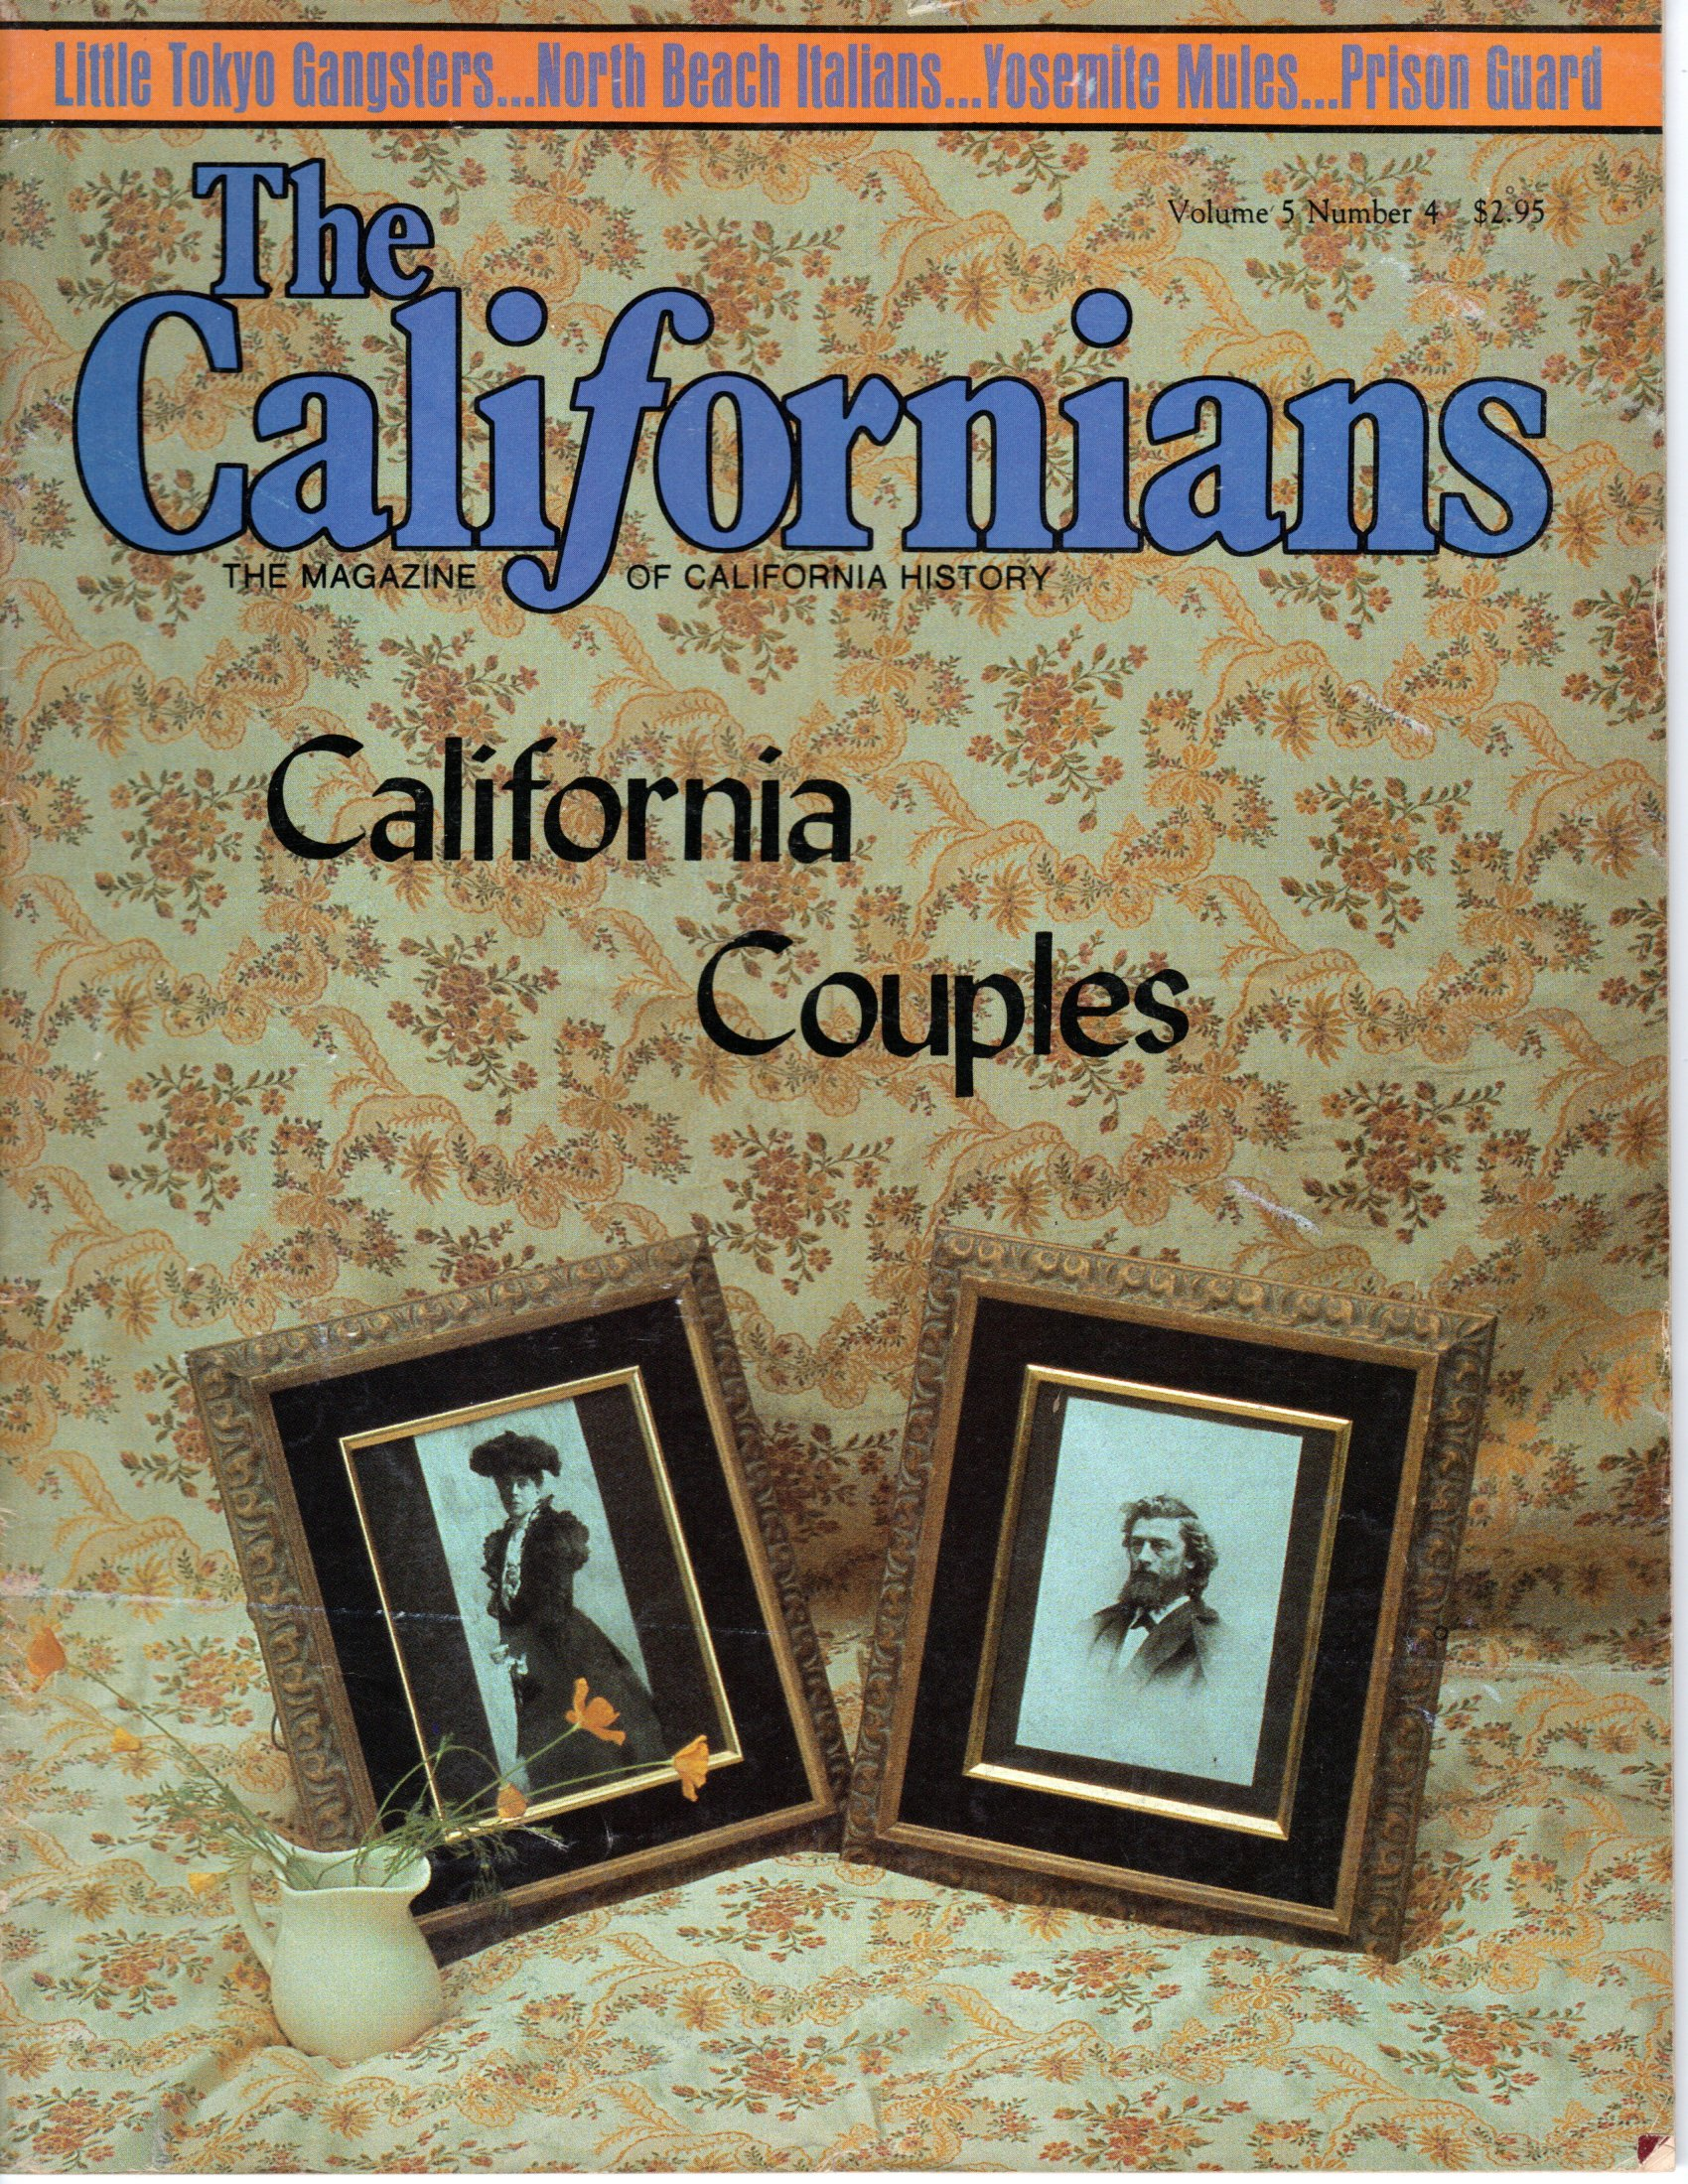 Image for The Californians. The Magazine of California History. California Couples.  [Volume 5, Number 4, July/August 1987]